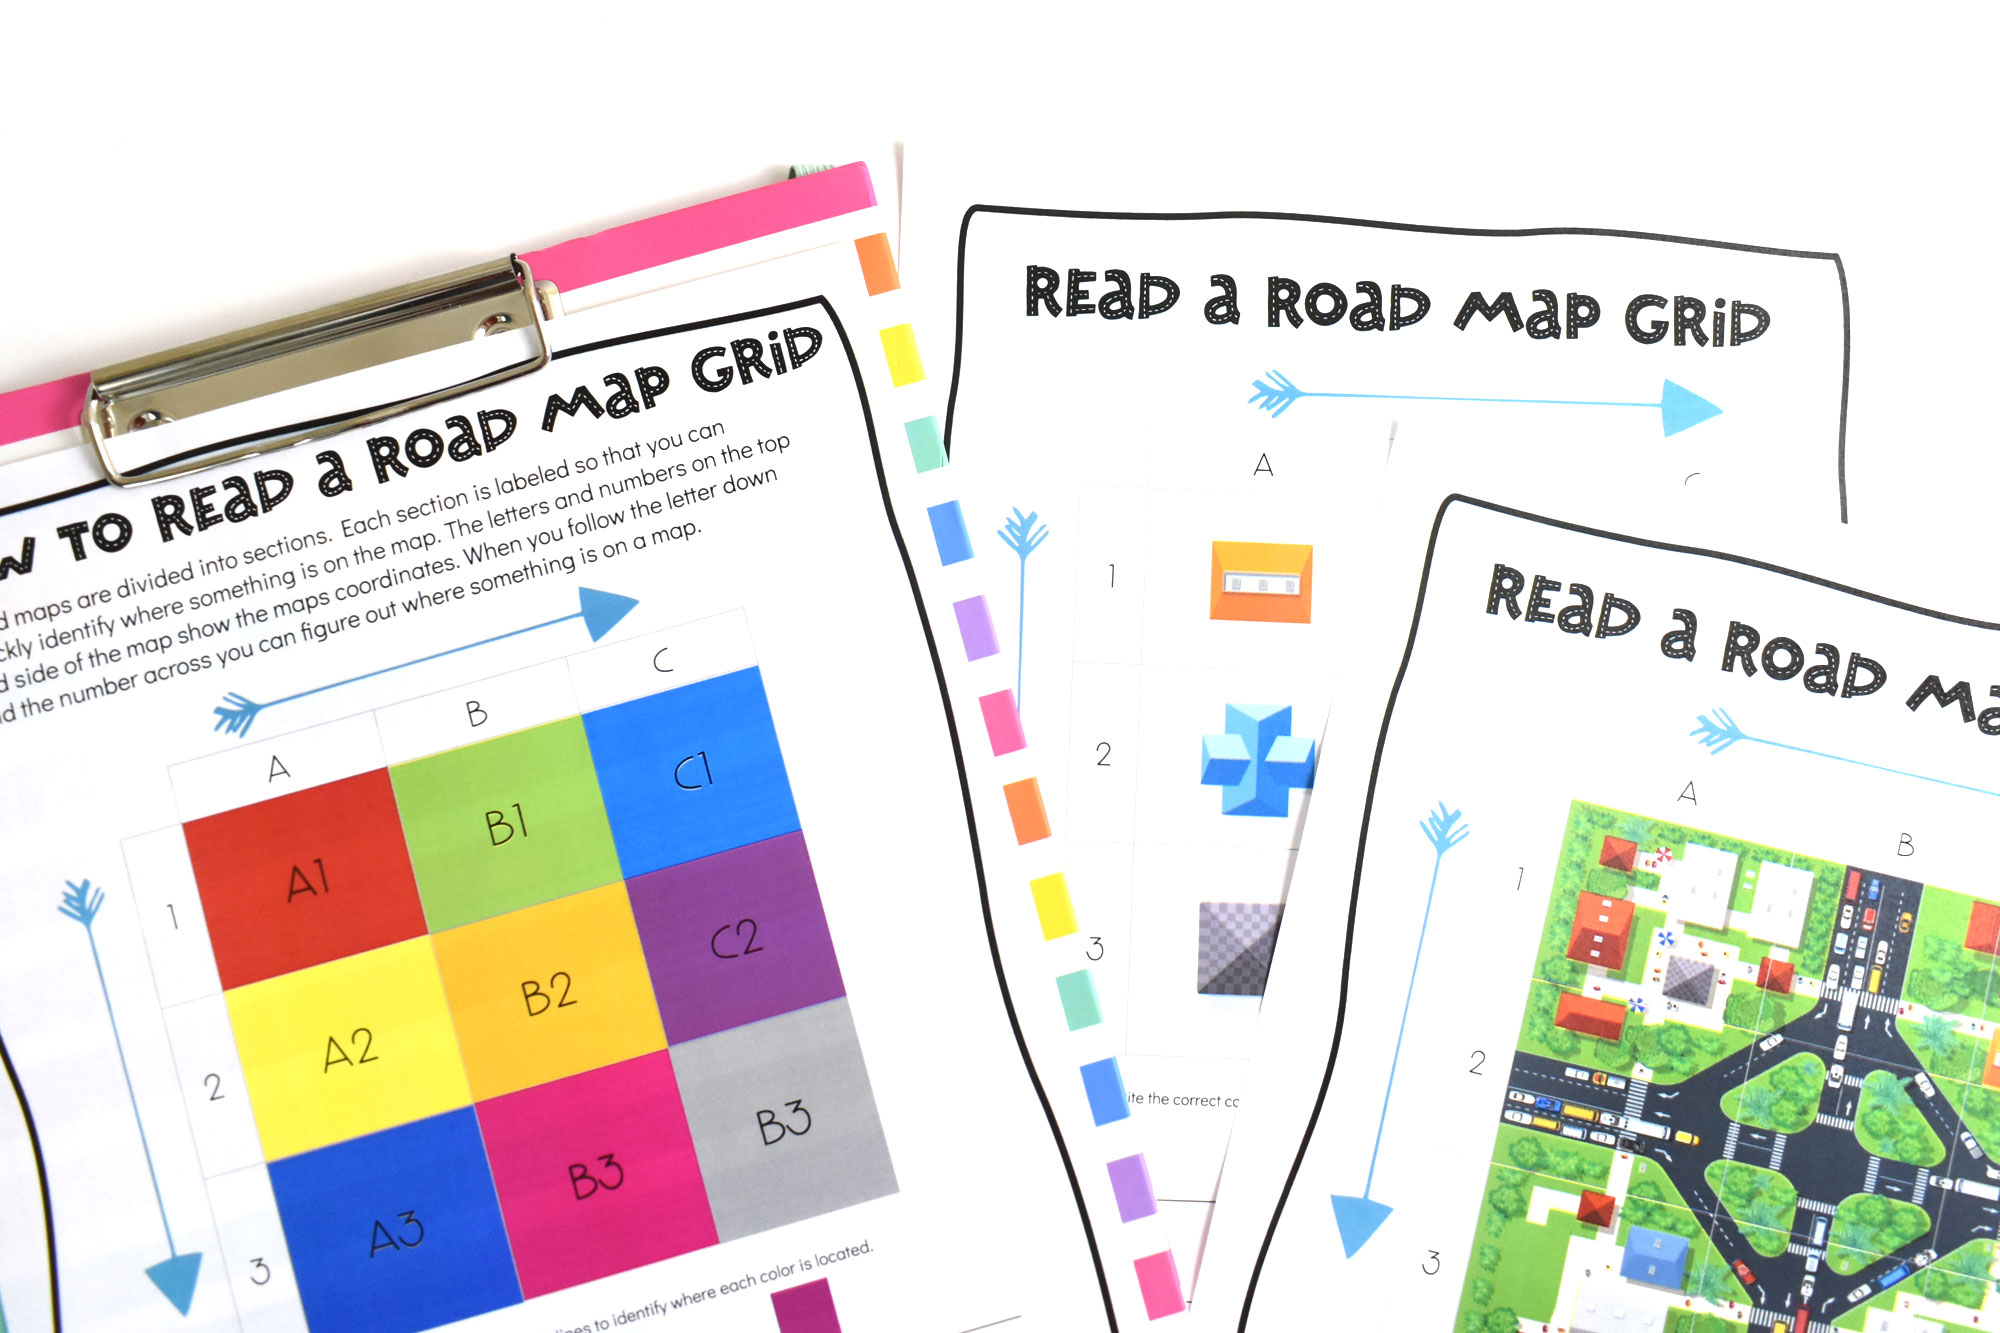 How to Read a Road Map Printable Set | HolidayPrintables.net #printables #roadmaps #geography #educationprintables #freeprintables #homeschoolprintables #weloveprintables #holidayprintables #stem